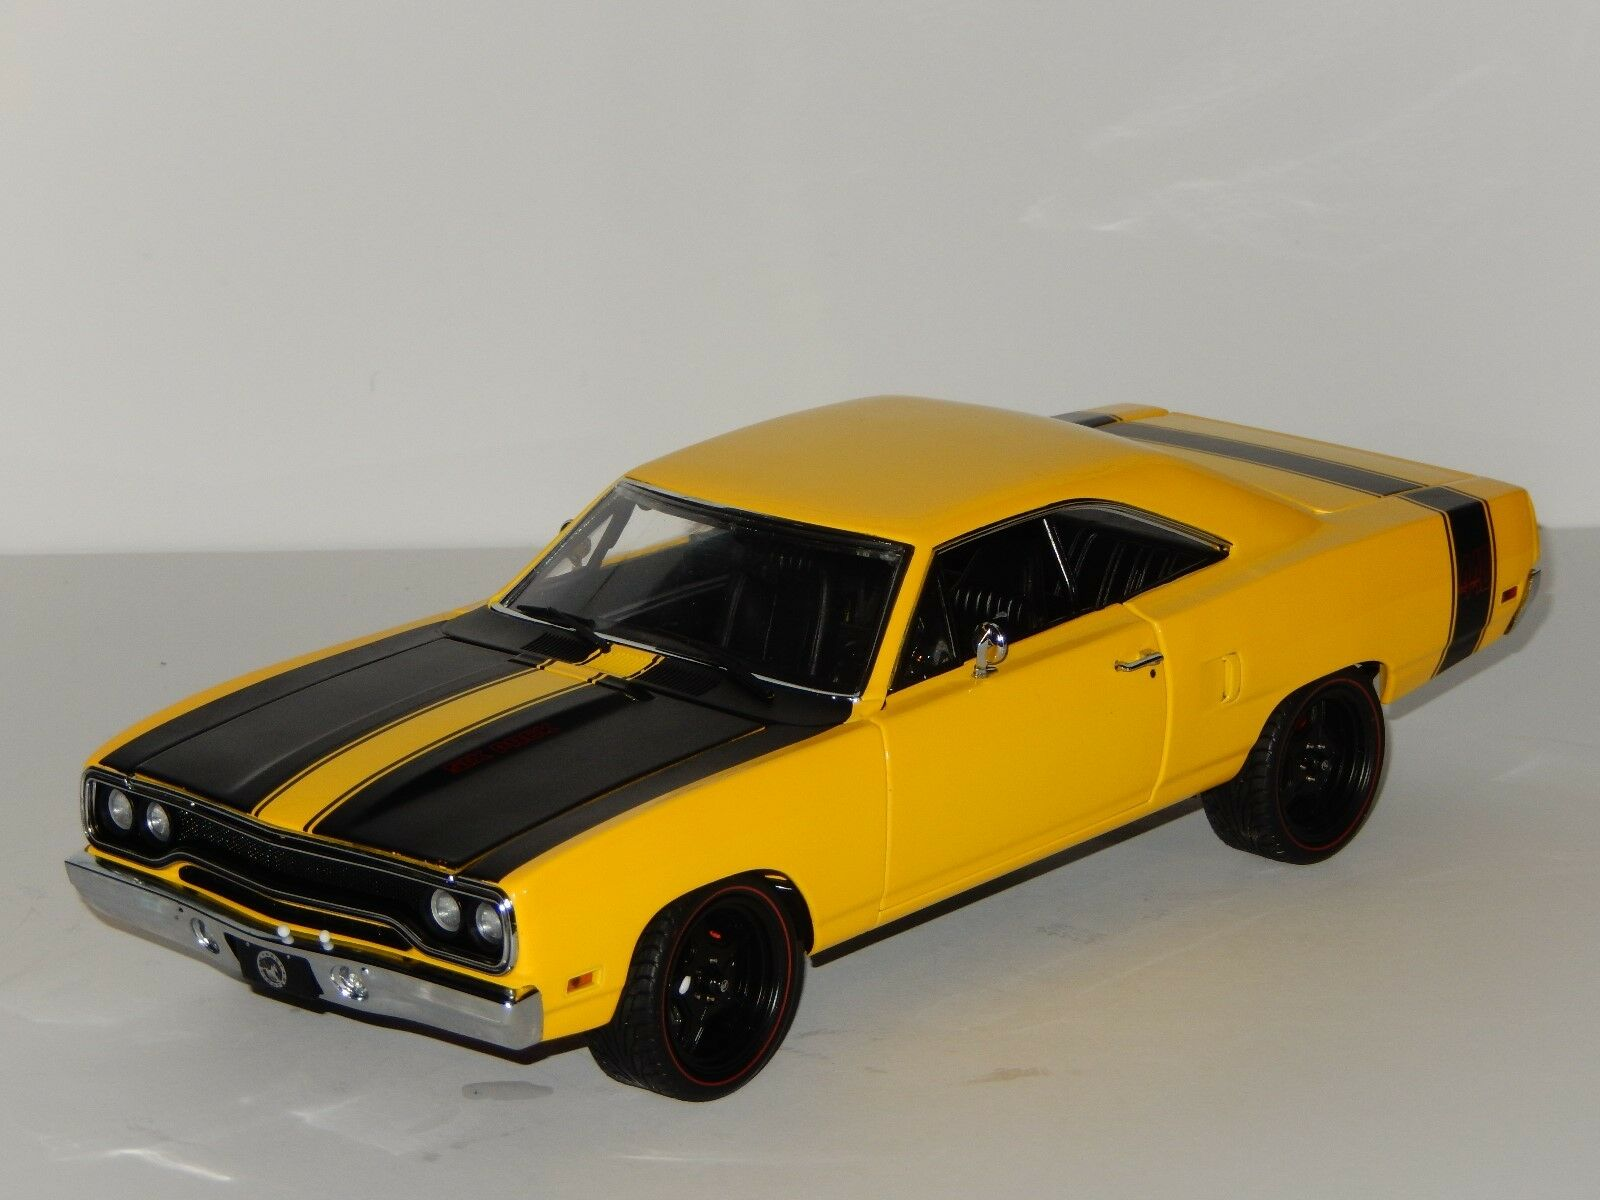 Échelle 1 18 GMP 1970 Street Fighter Plymouth Road Runner, Article No 18837